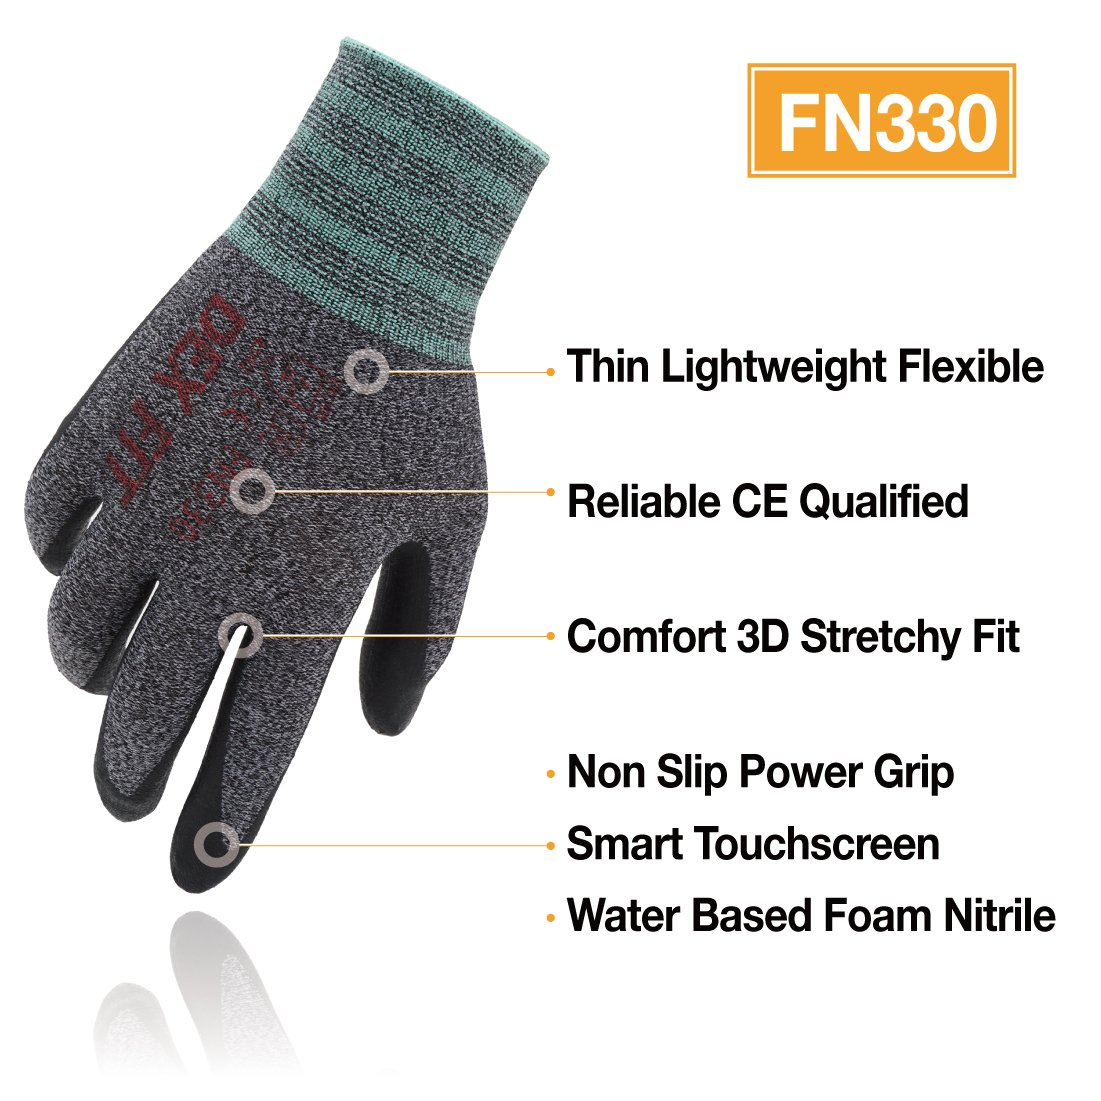 Large 3 Pairs 3D Comfort Stretch Fit DEX FIT Grey Work Gloves FN320 Power Grip Durable Foam Nitrile Coated Performance Cool Thin /& Lightweight Nylon Machine Washable